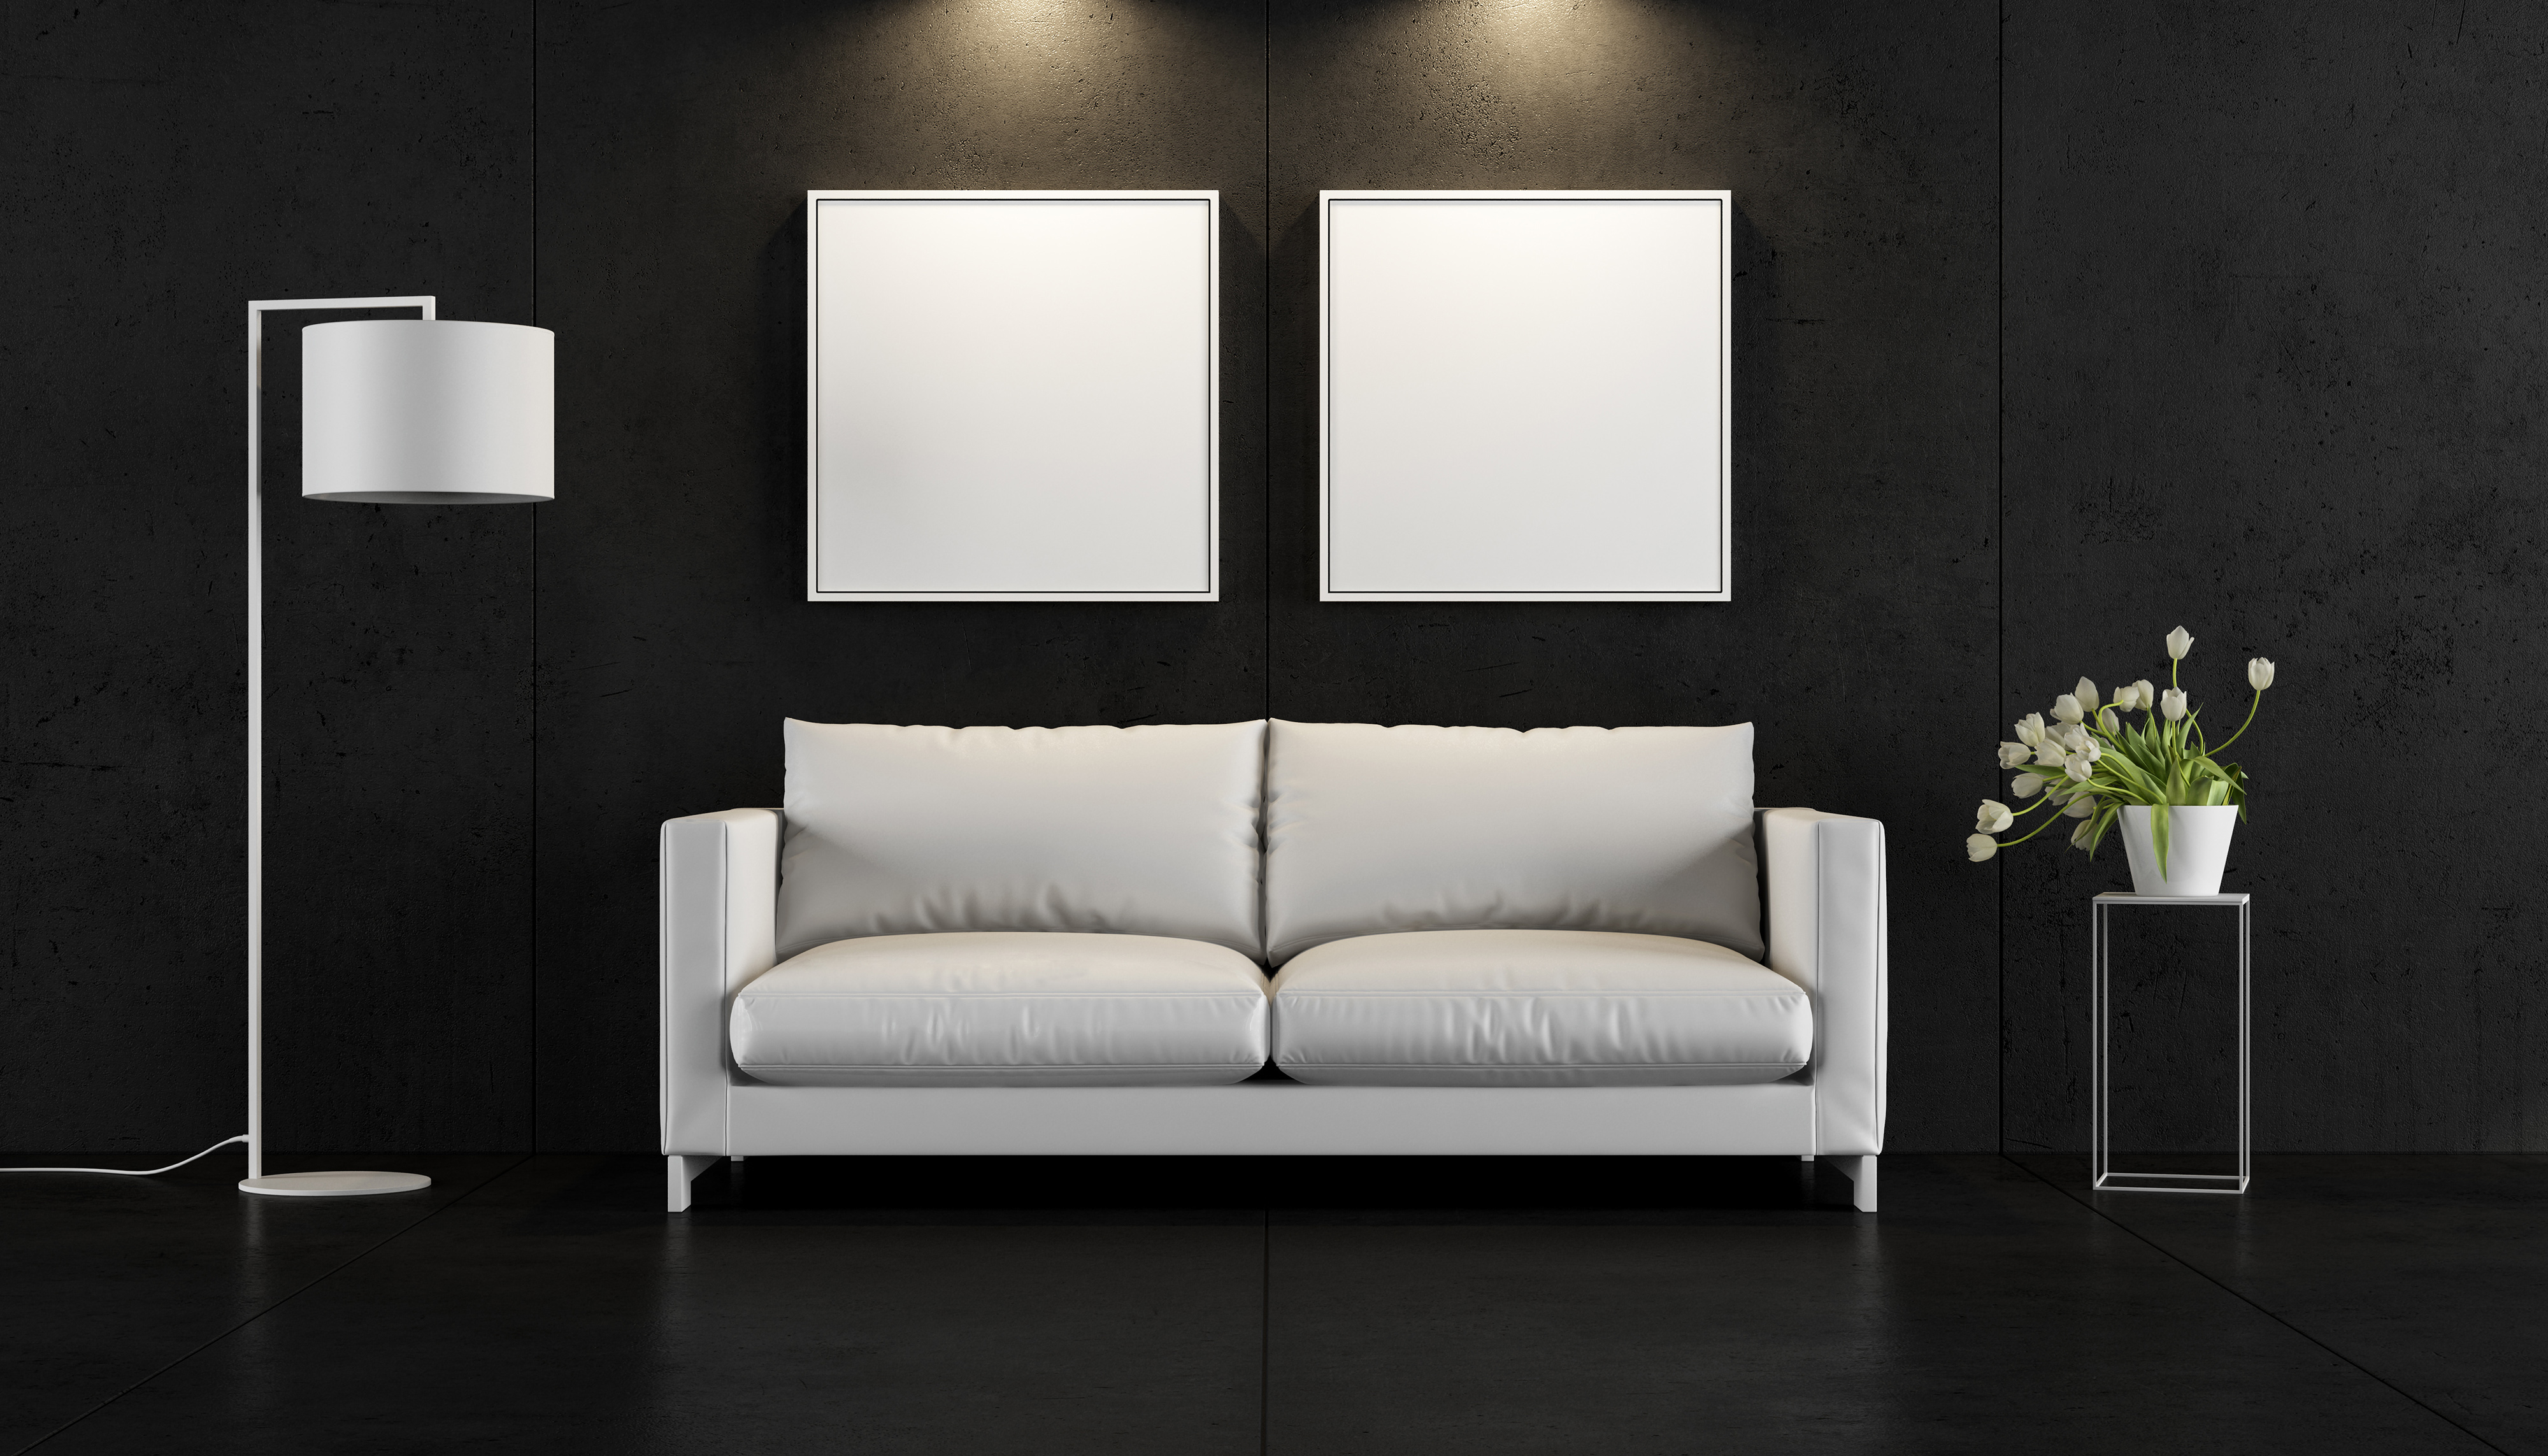 Indoor floor lamp and sofa painting 55669